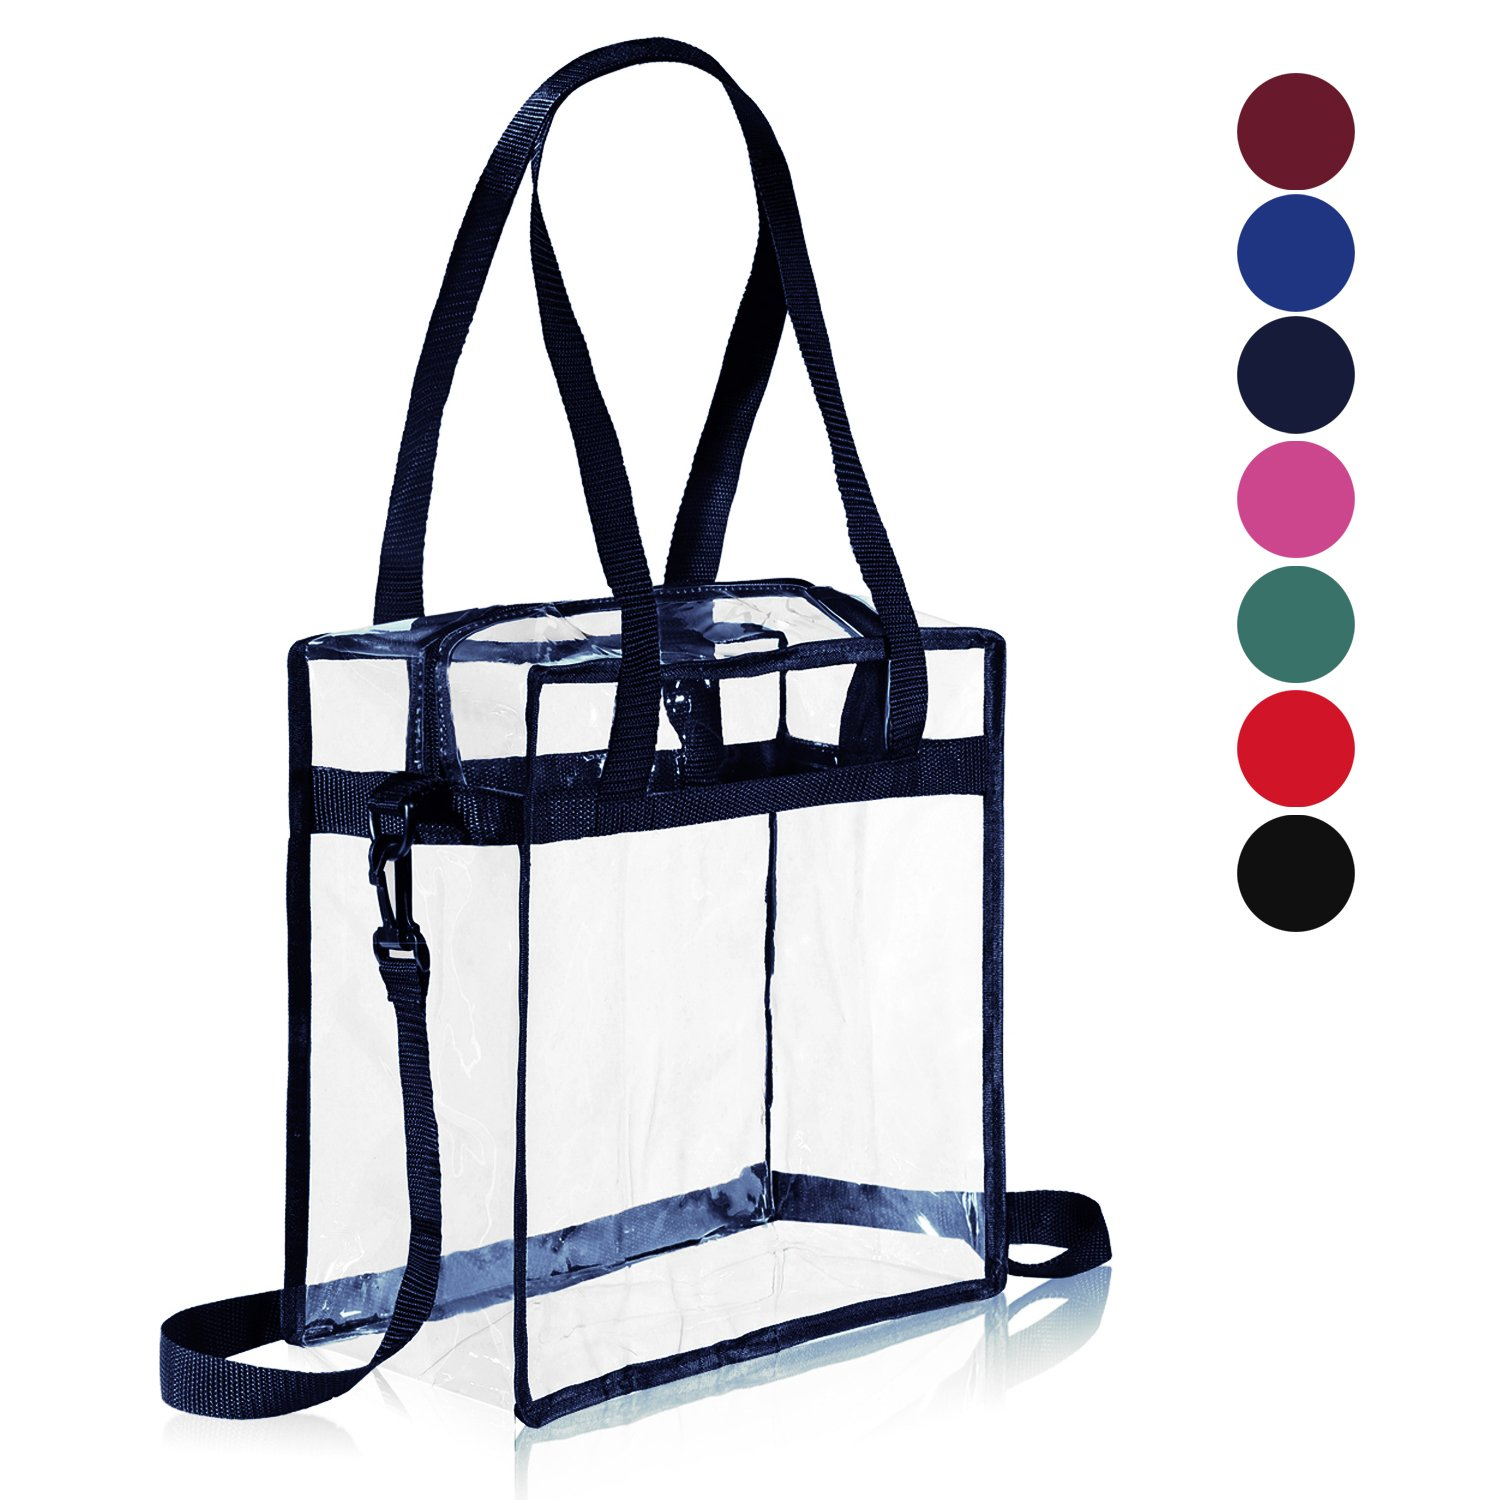 """Clear Bag NFL & PGA Stadium Approved - The clear tote bag with zipper closure is perfect for work, sports games.Cross-Body Messenger Shoulder Bag w Adjustable Strap -12"""" X 12"""" X 6"""" (Navy)"""